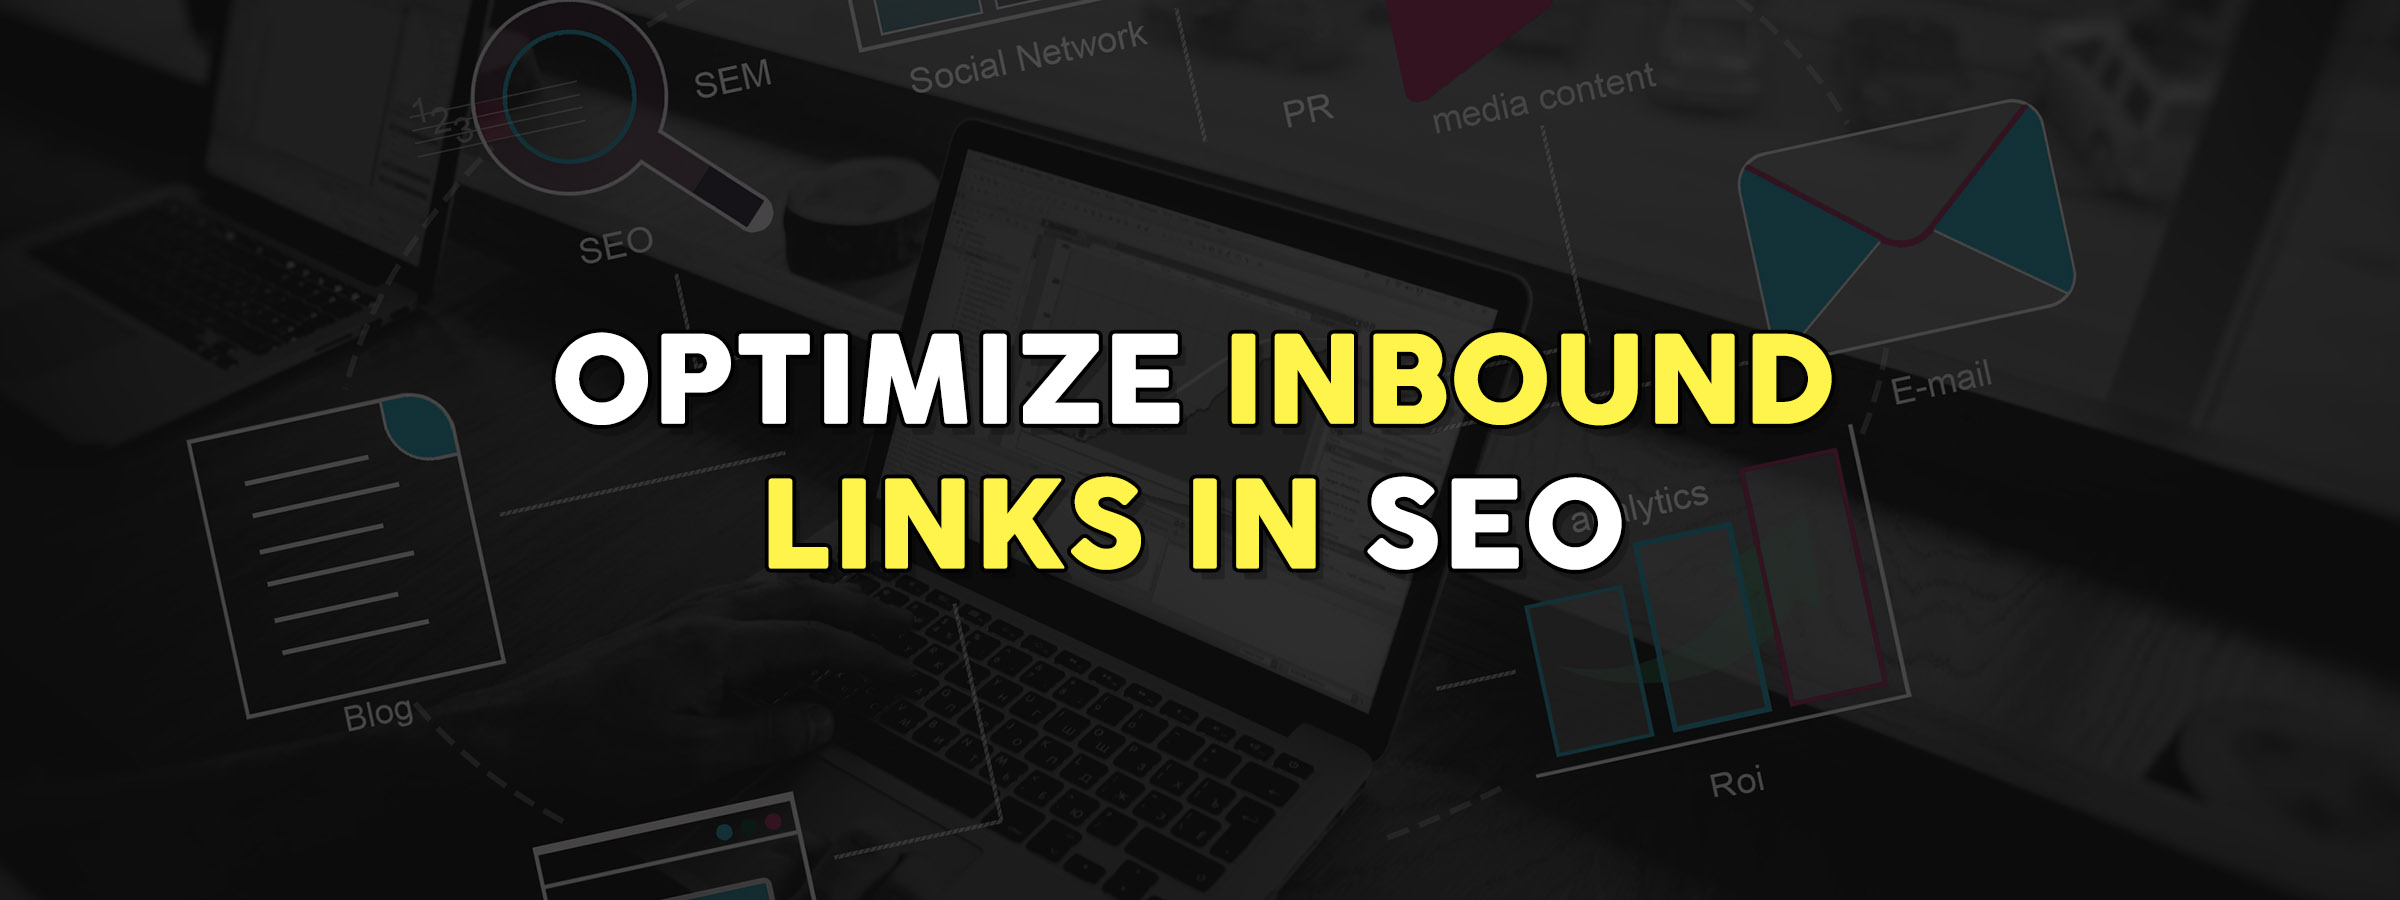 12 Methods to Optimize Inbound Links in SEO